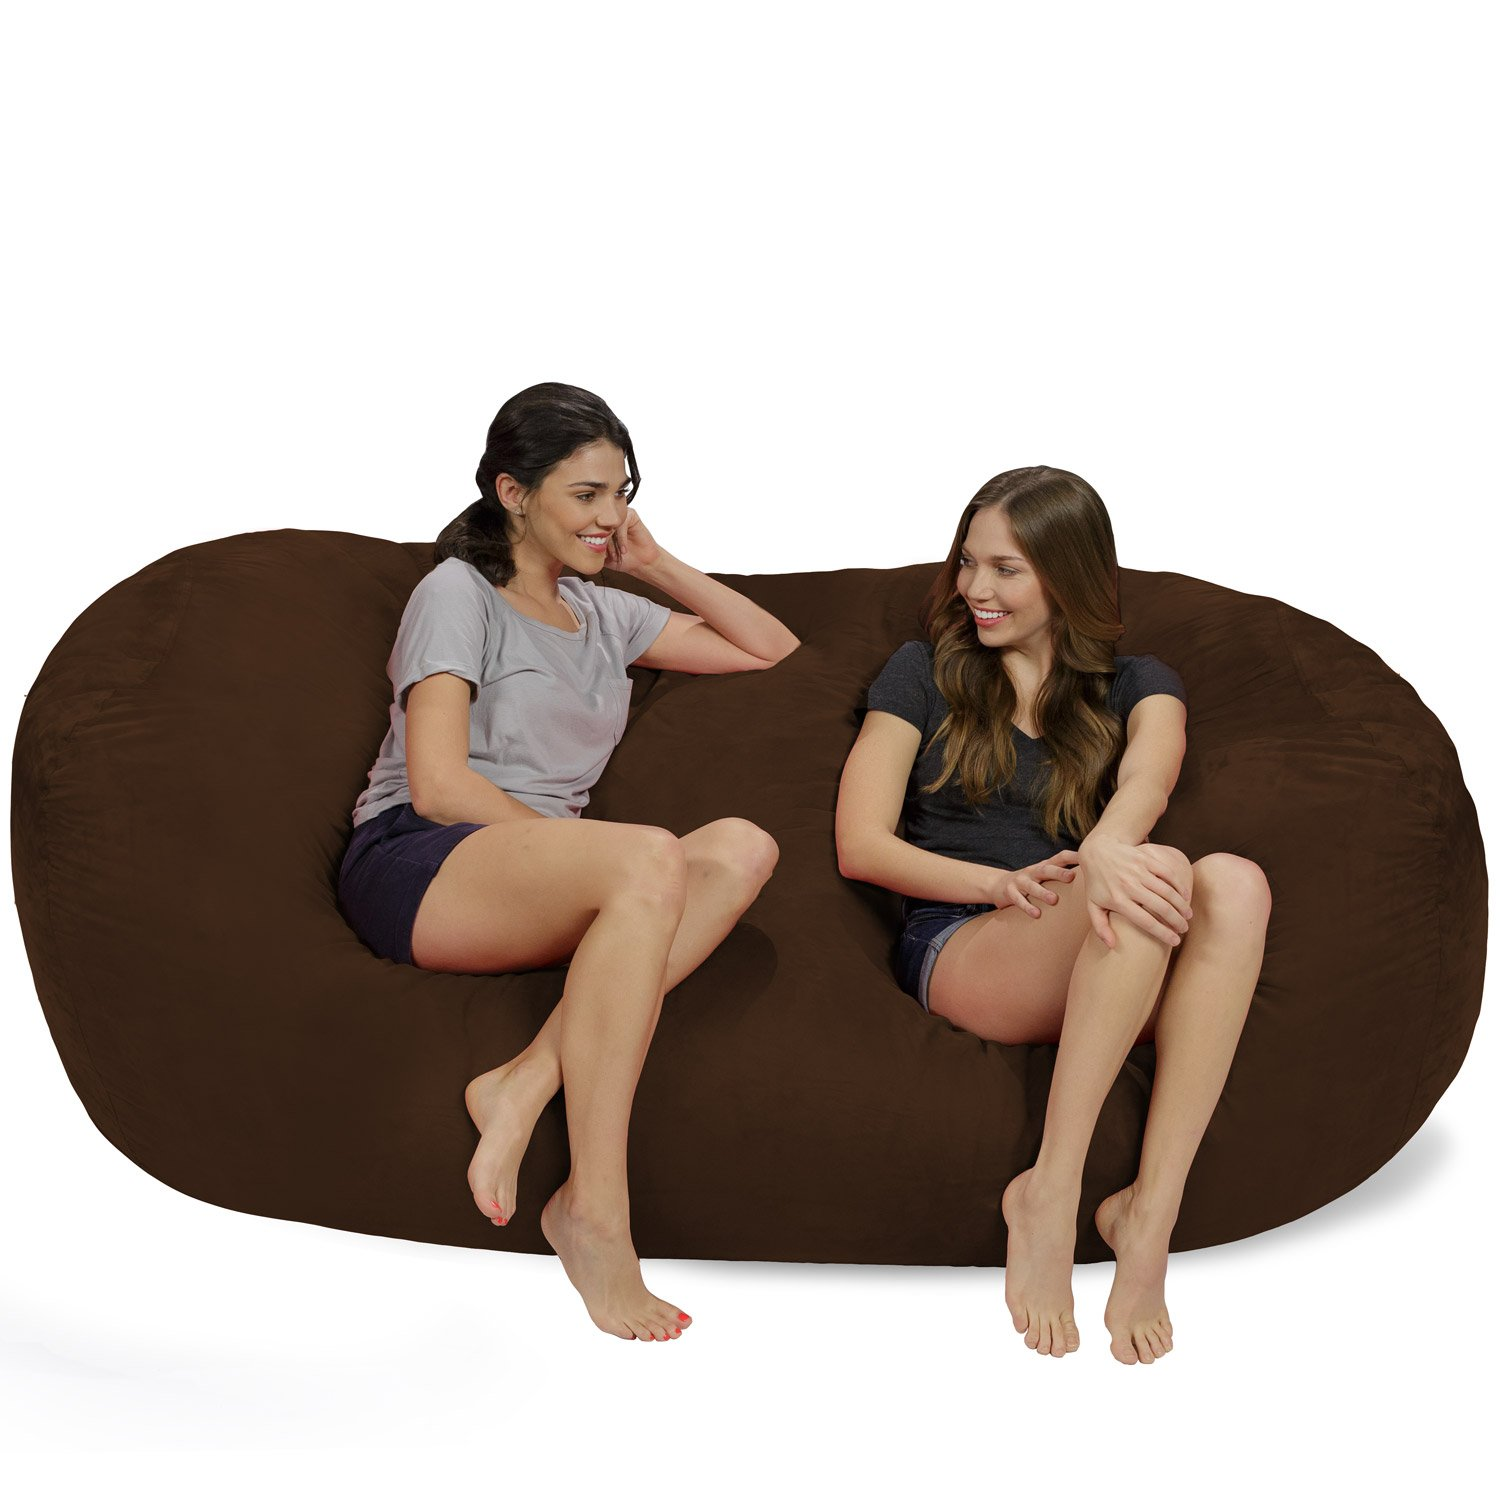 Chill Sack Memory Foam Bean Bag Lounger, 7.5-Feet, Chocolate by Chill Sack (Image #1)